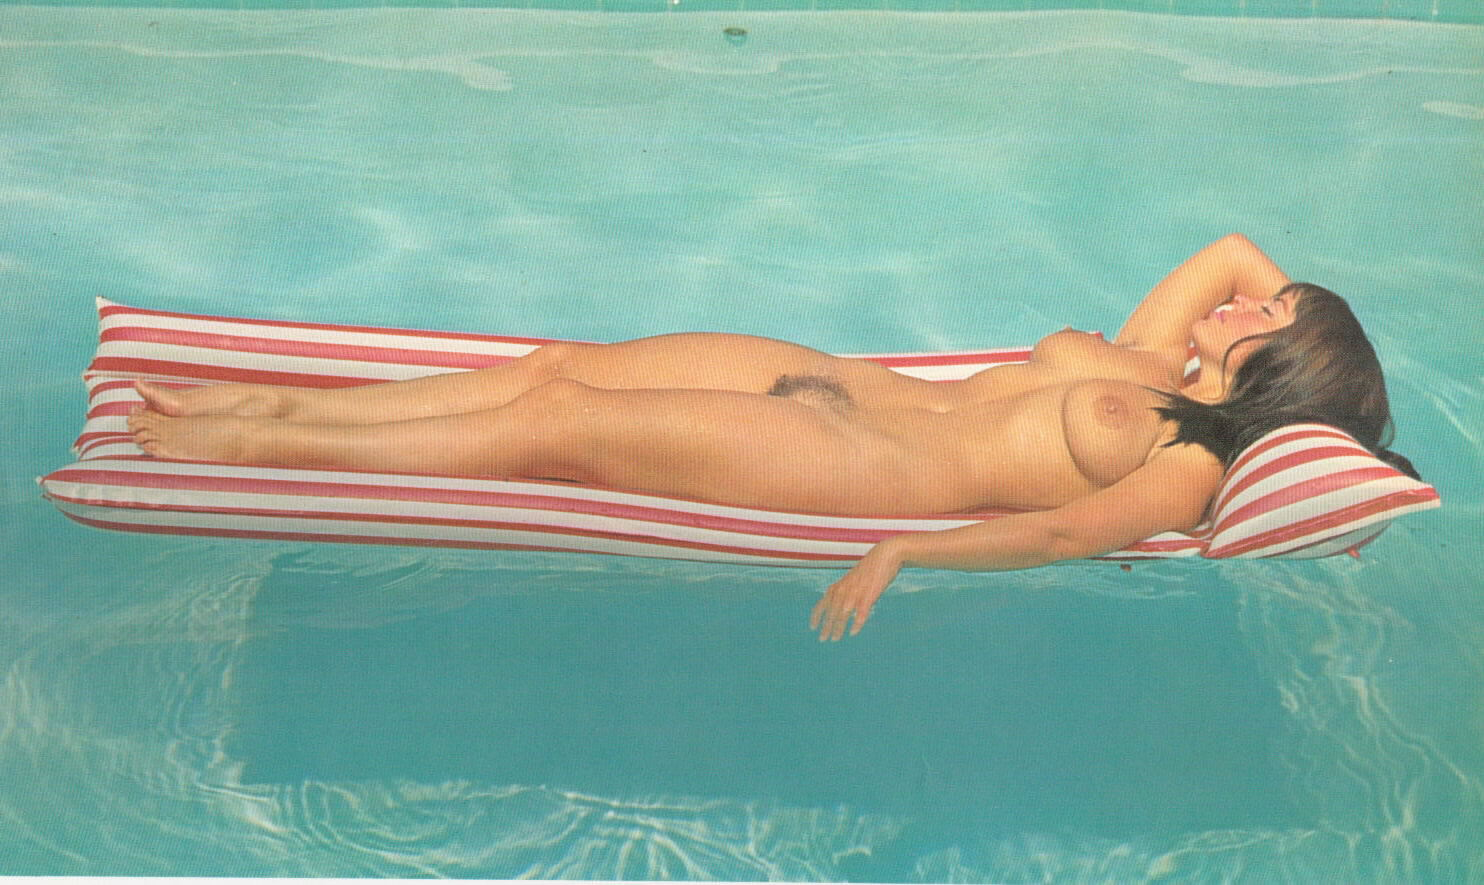 nudist magazine vintage